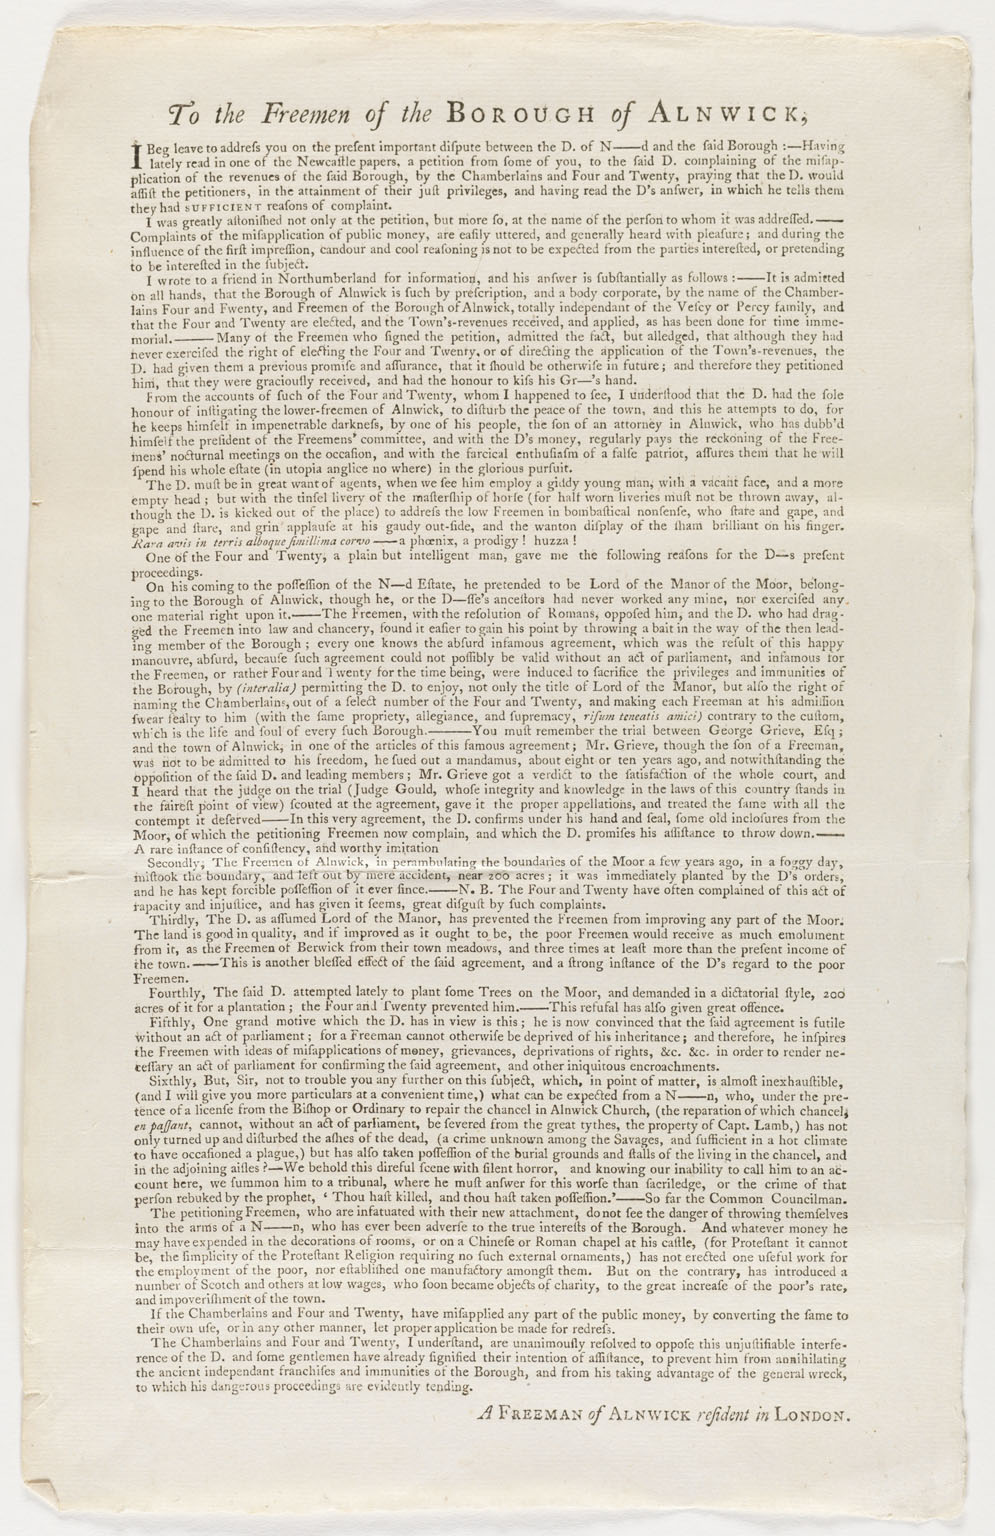 CLICK FOR LARGER IMAGE: To the freemen of the borough of Alnwick.